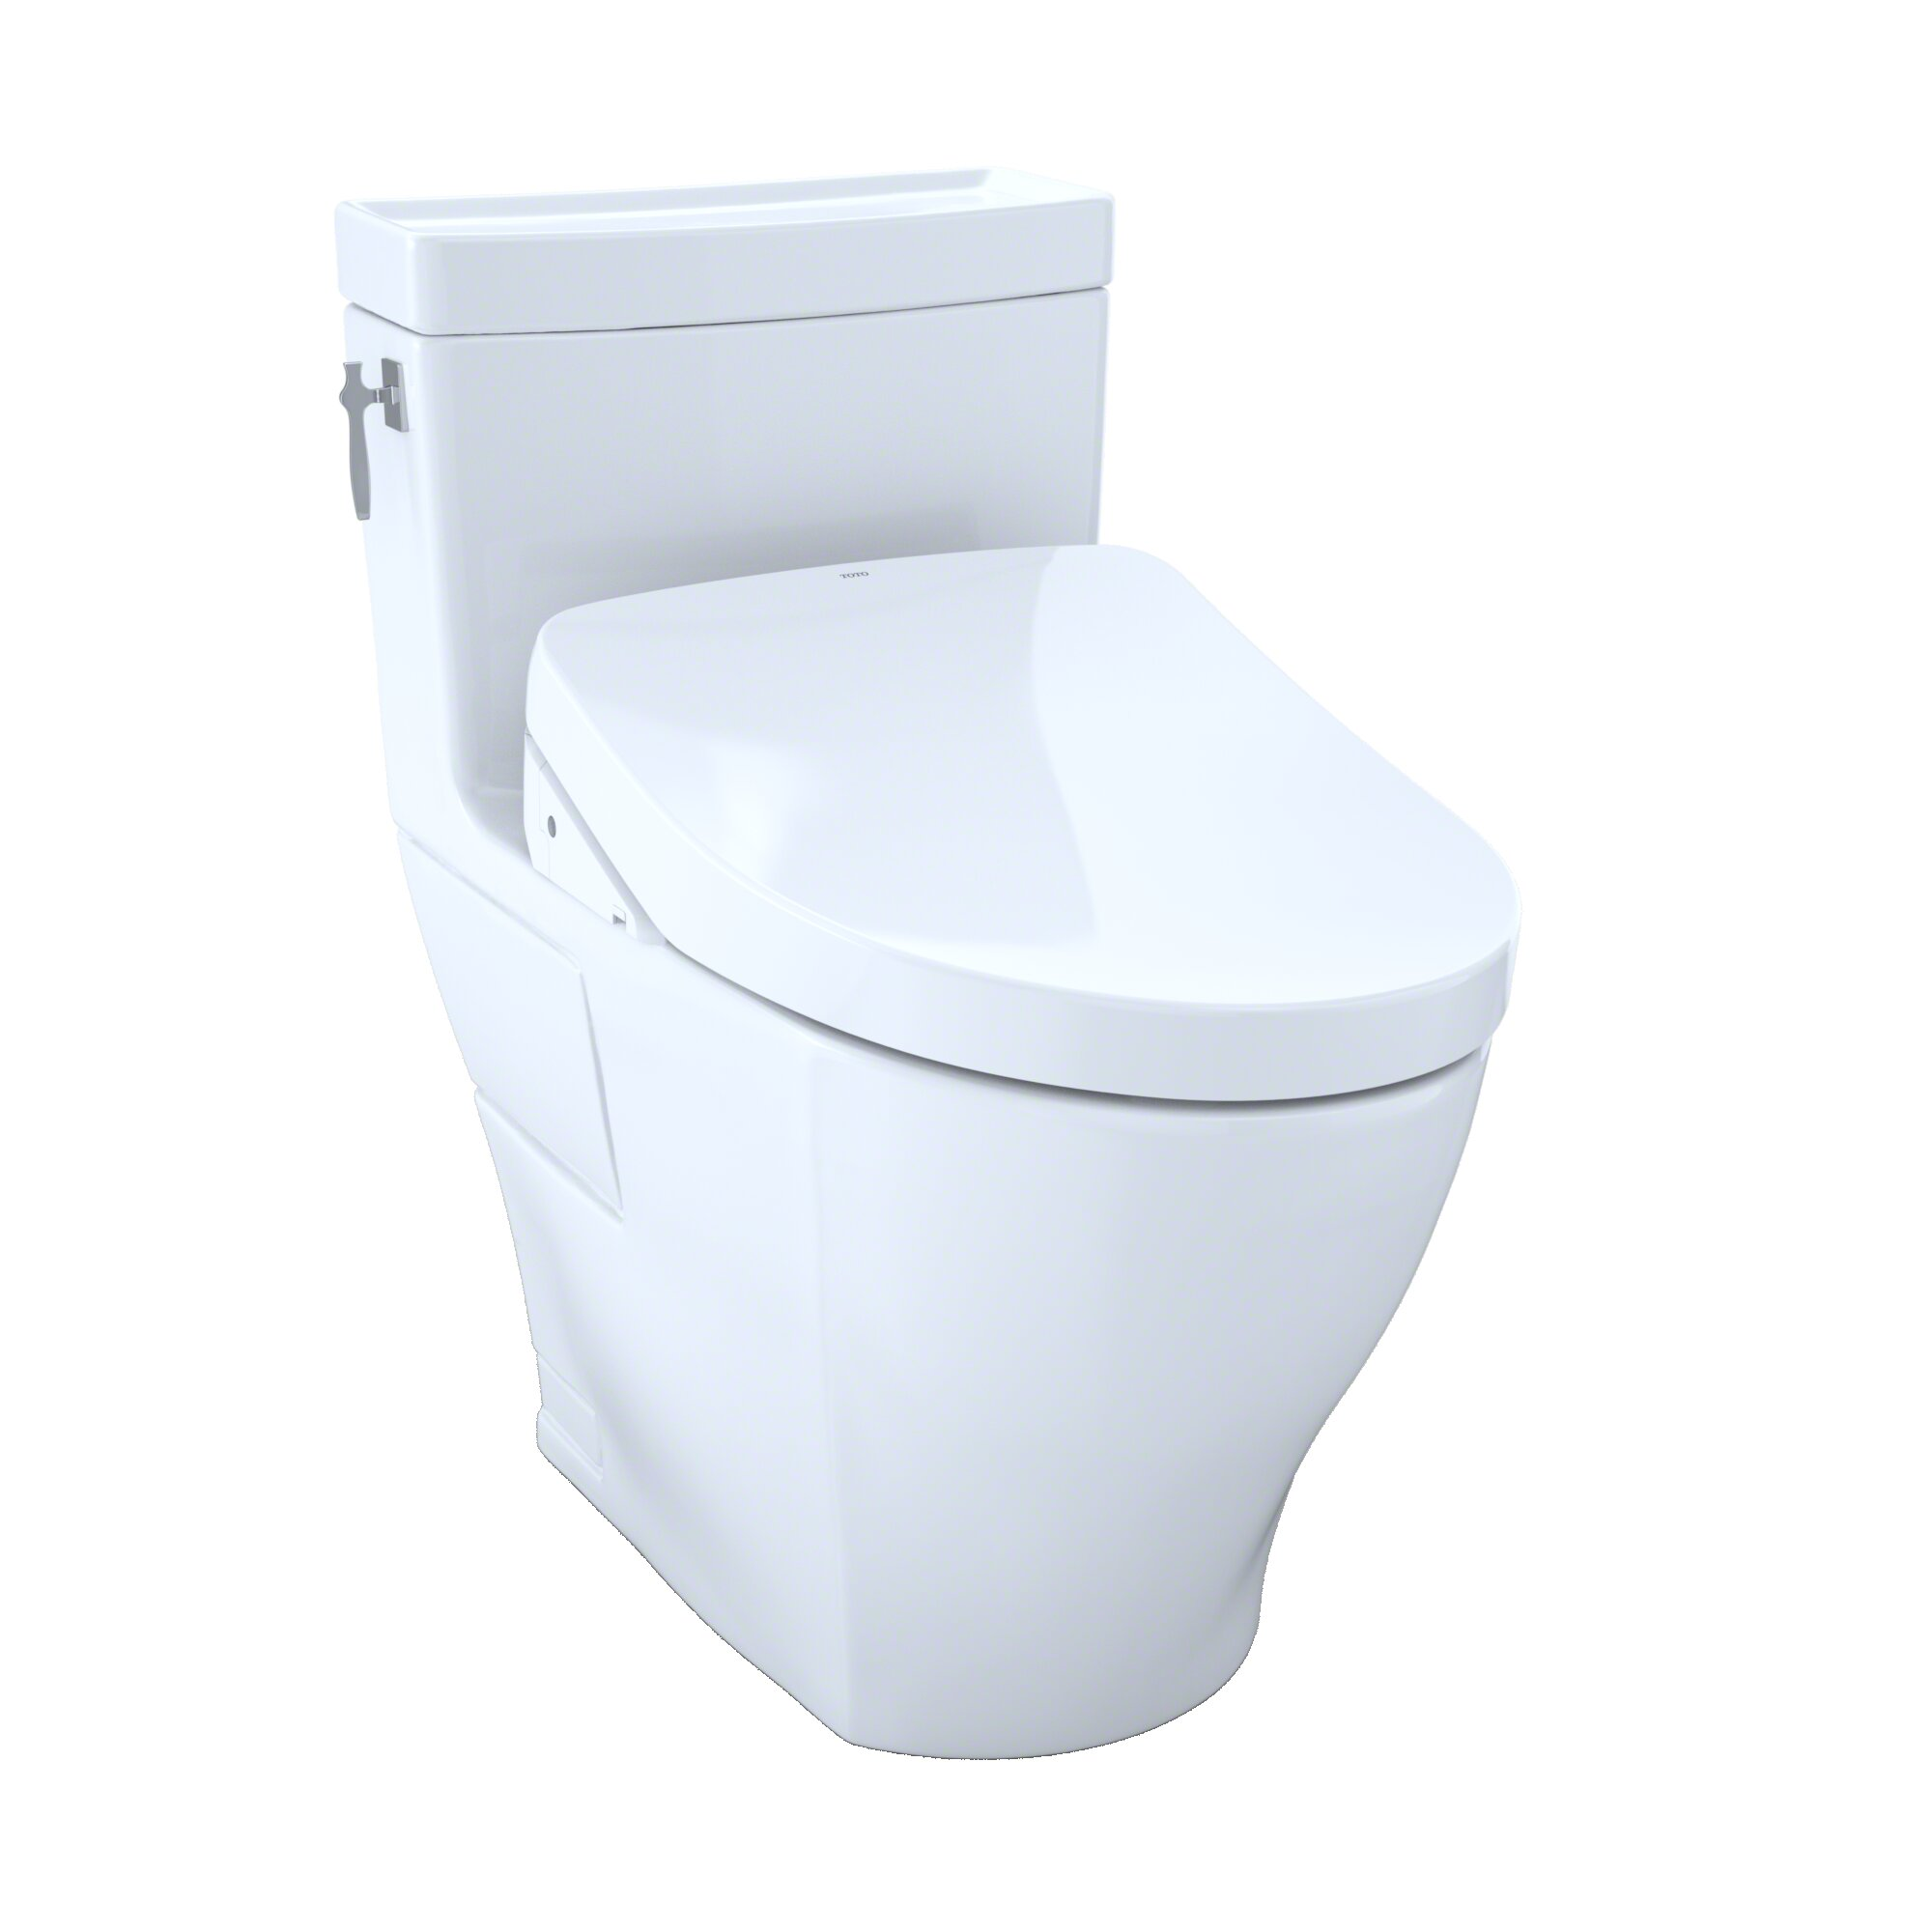 Toto Aimes 1.28 GPF Elongated One-Piece Toilet with Ewater+ | Wayfair